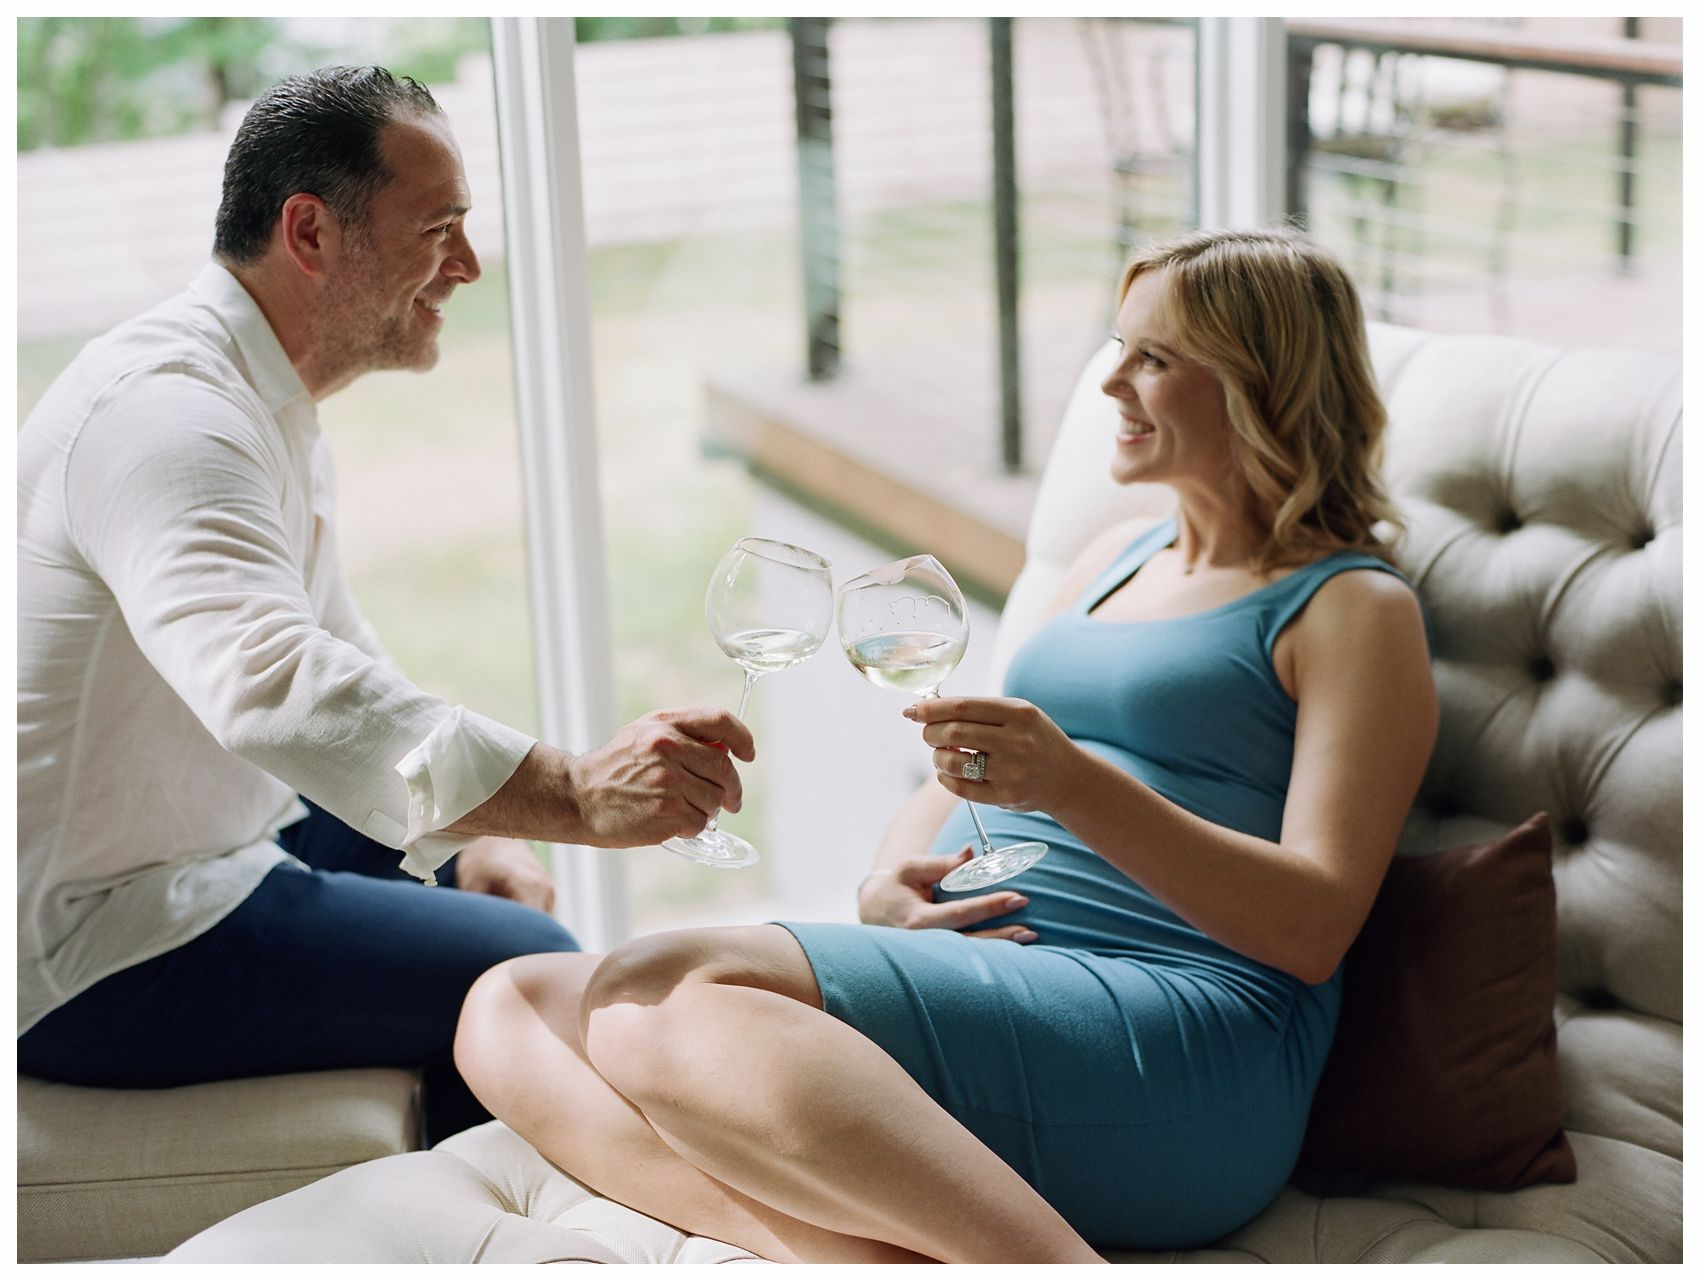 maternity session at home with a champaine toast on the couch of their New Jersey home